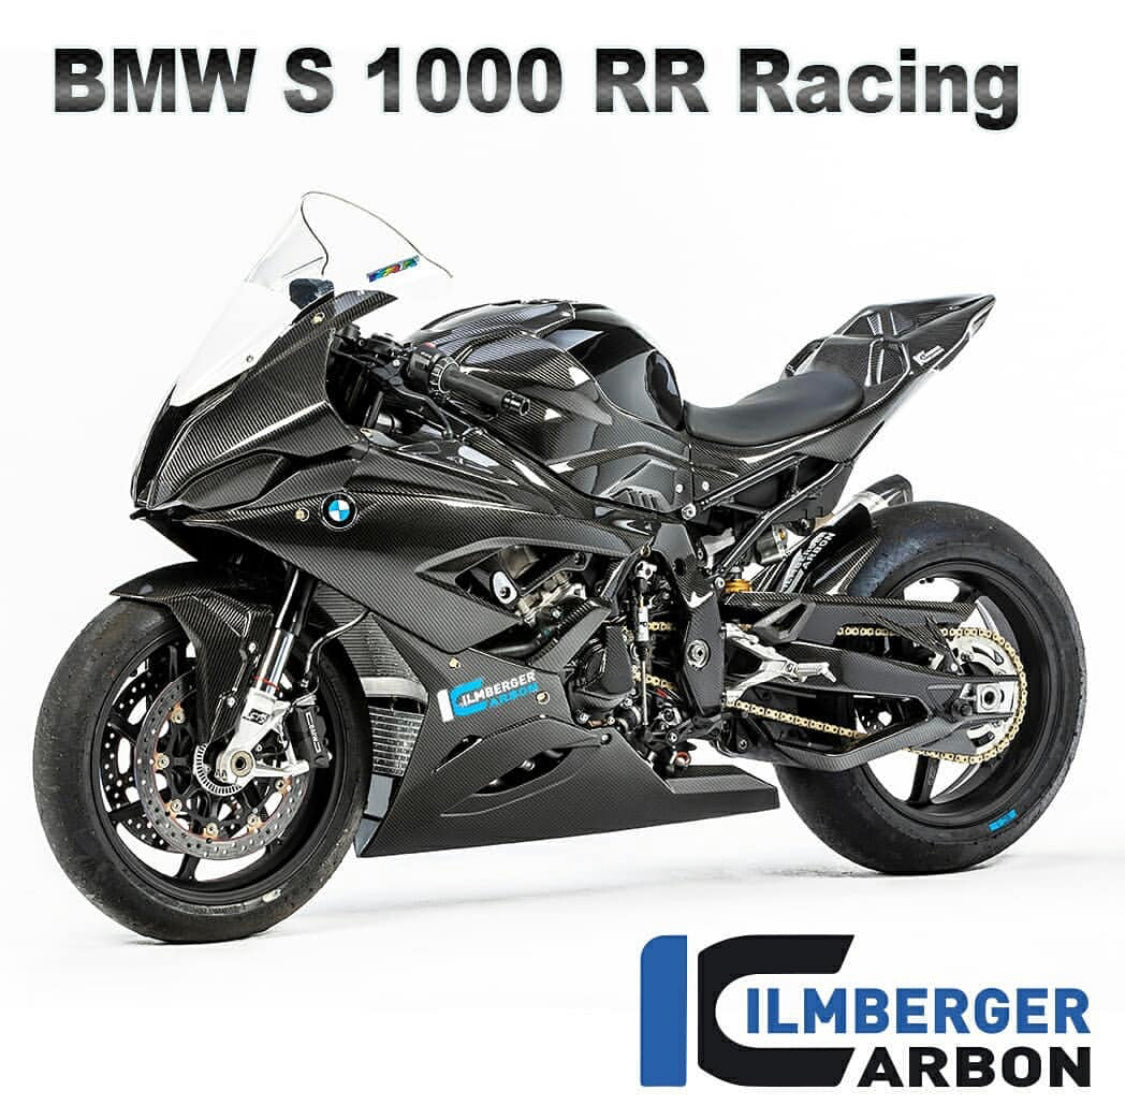 BMW s1000rr Racing Carbon fibre race bike parts from ilmberger carbonparts